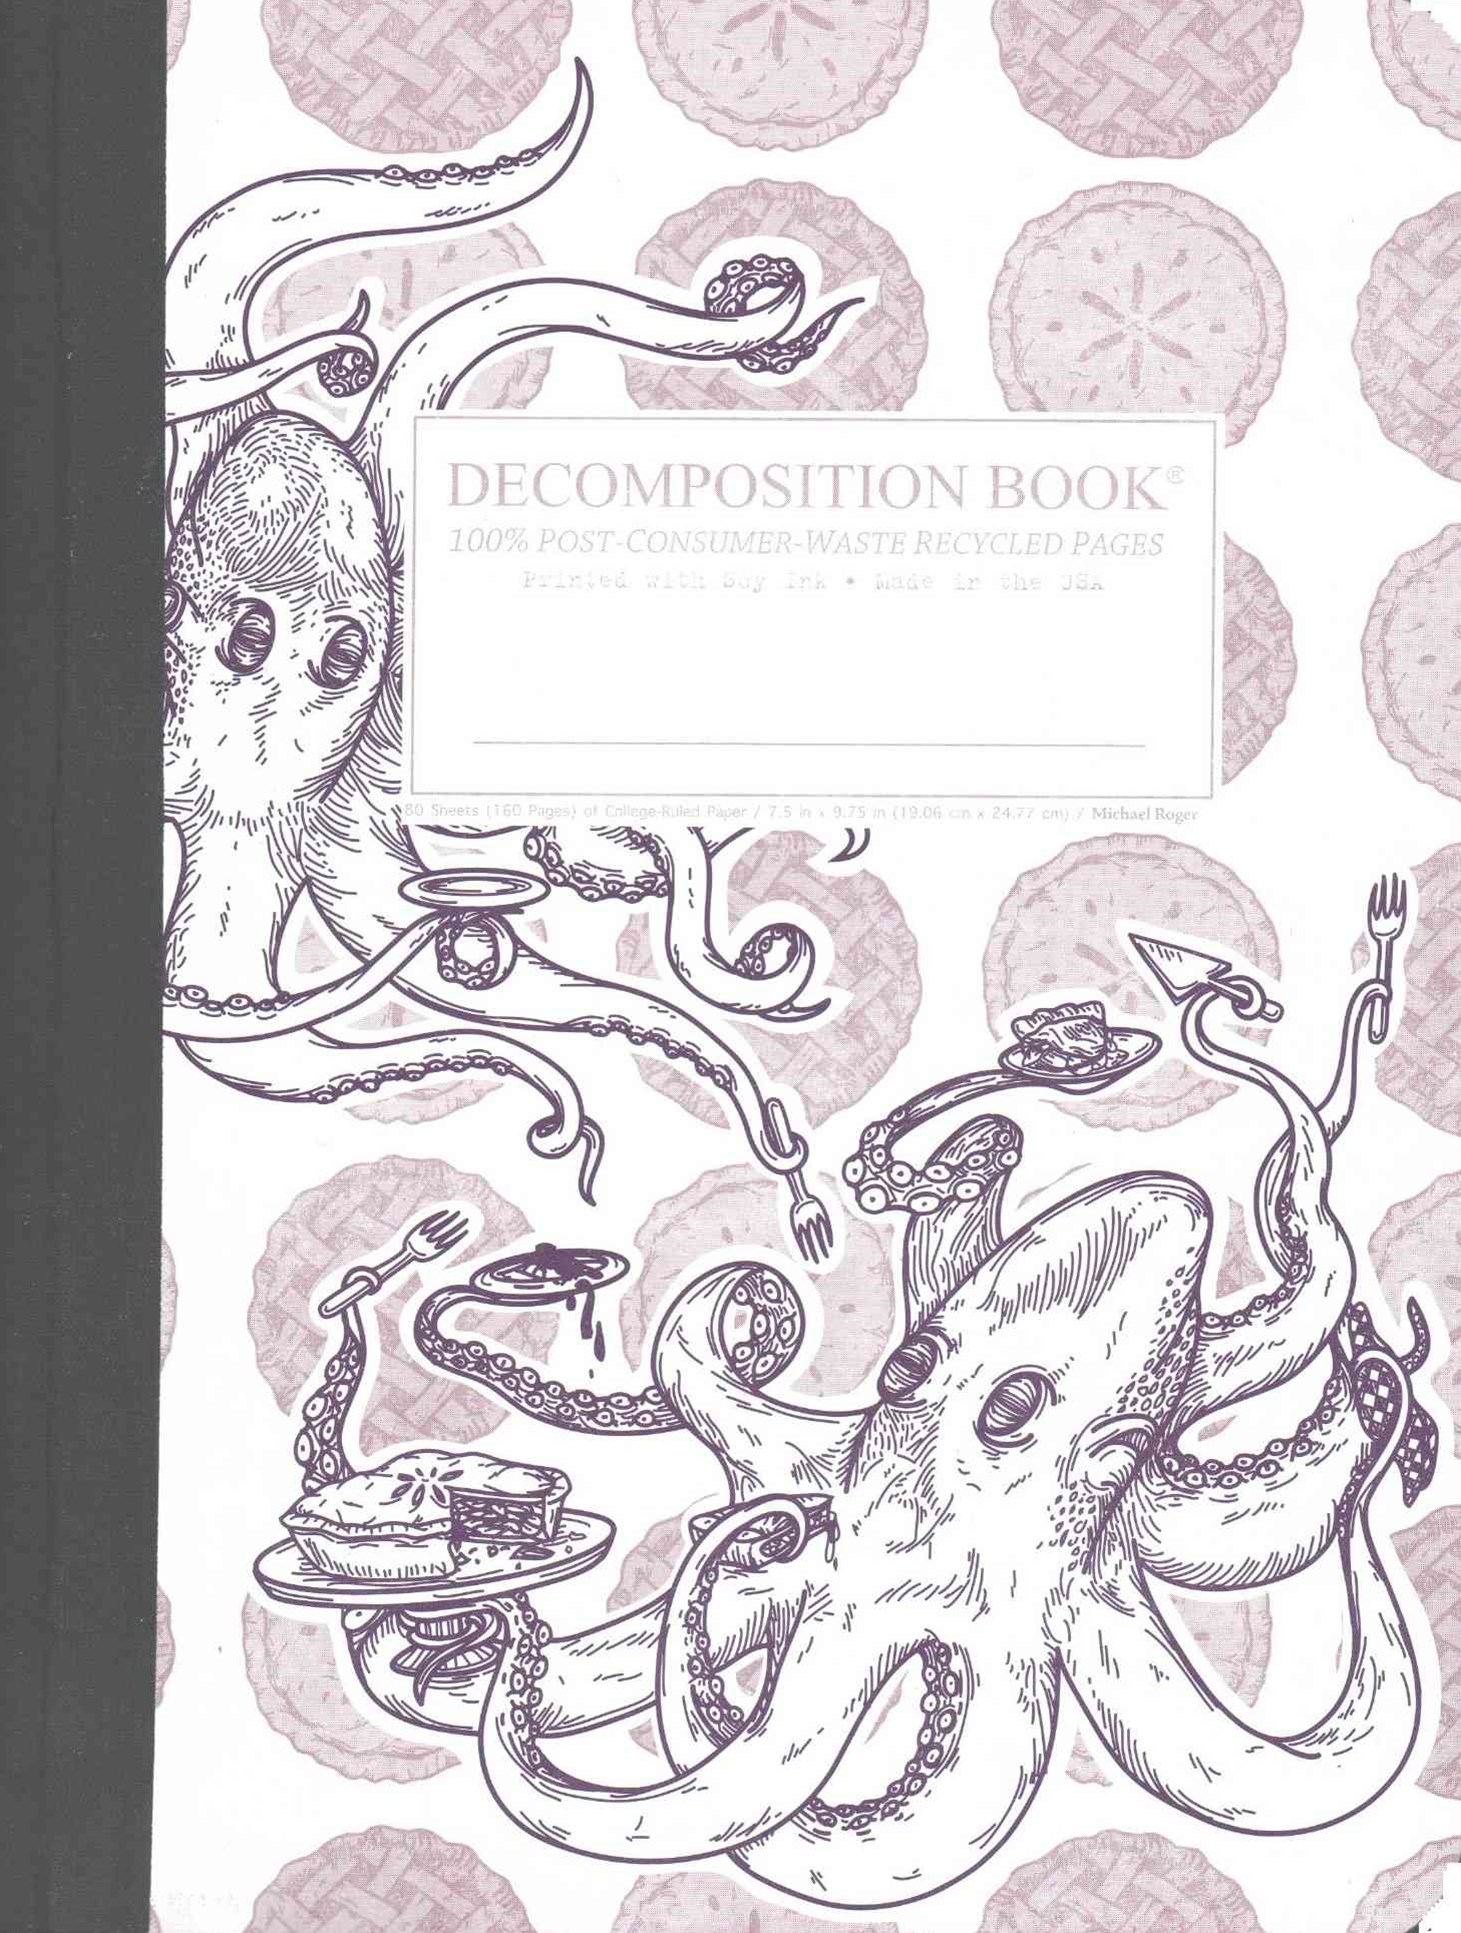 Decomposition - Notebook - Ruled - Large - Octopie